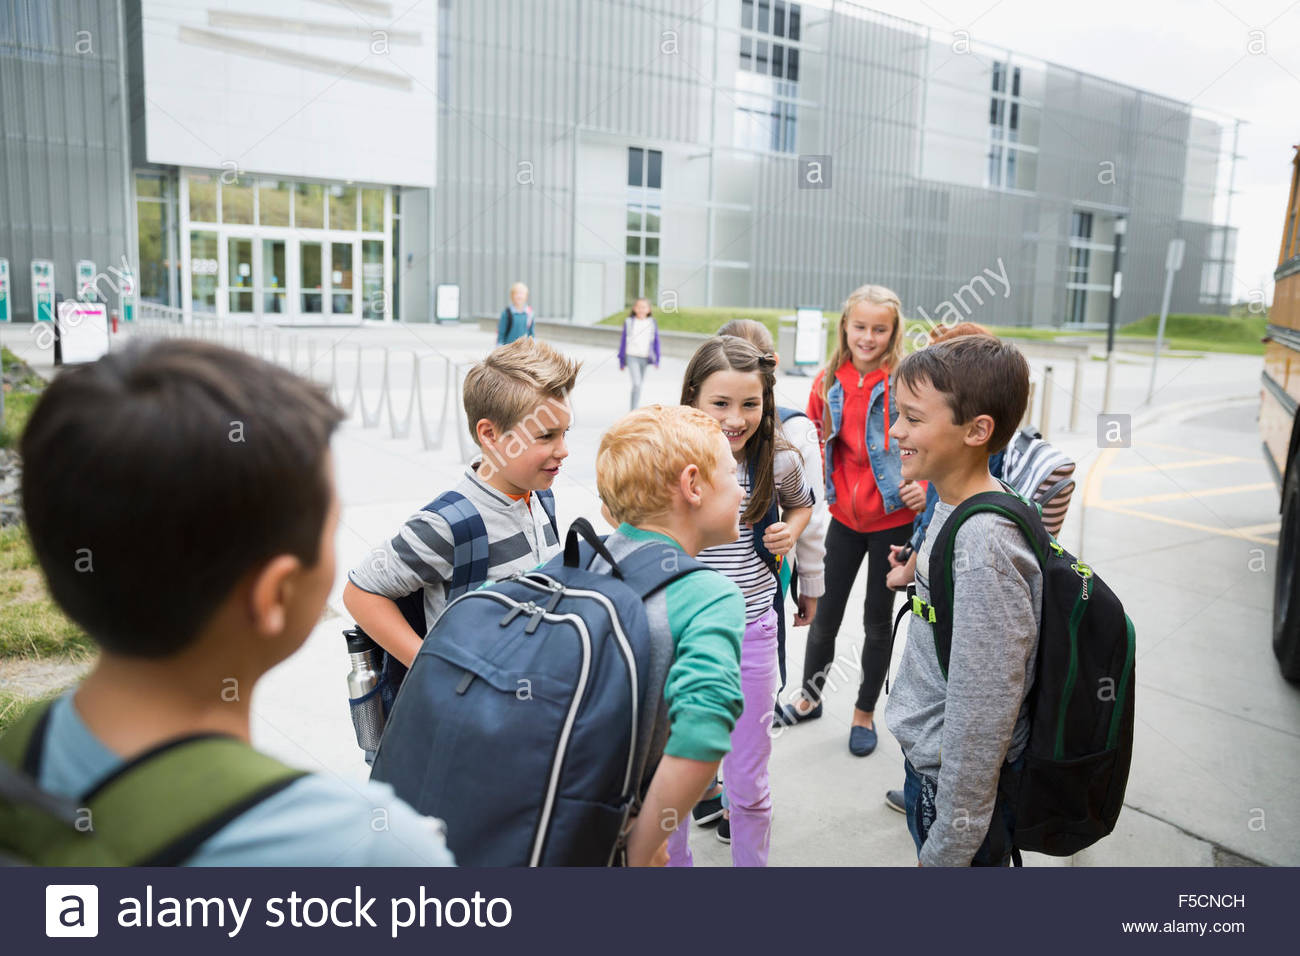 School kids with backpacks talking outside science center - Stock Image